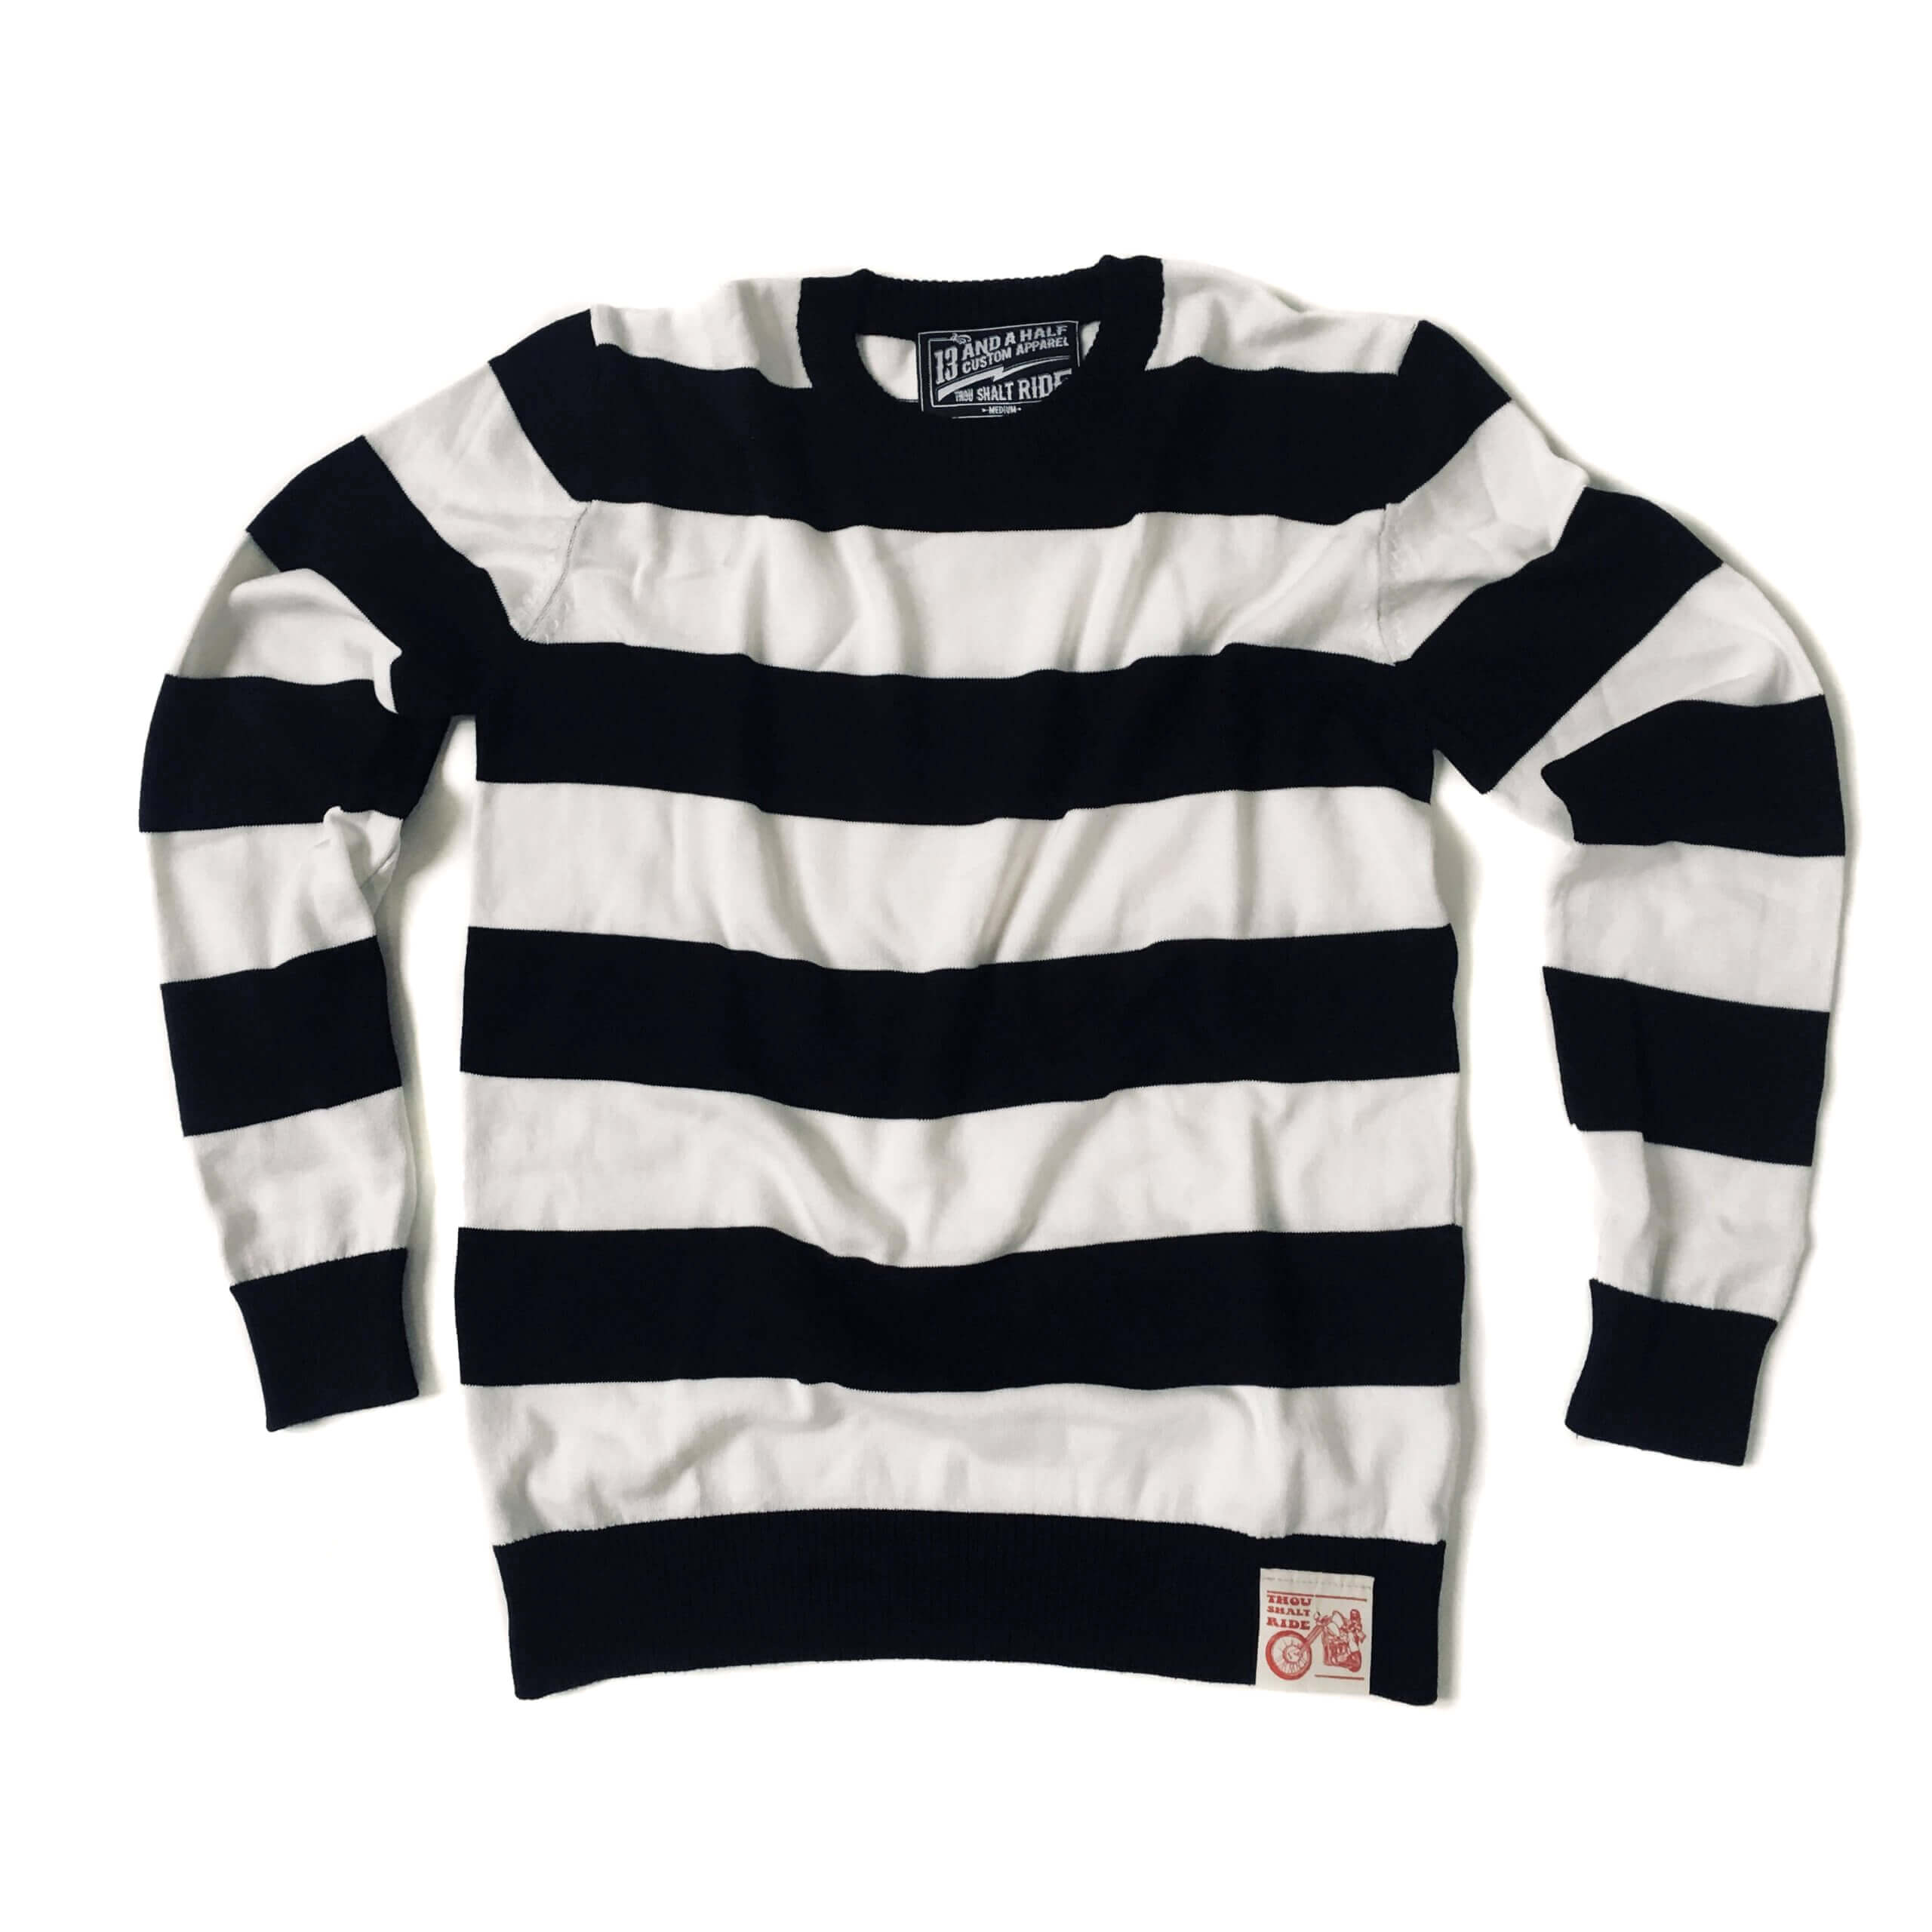 13_and_a_half_PrisonShirt1-scaled